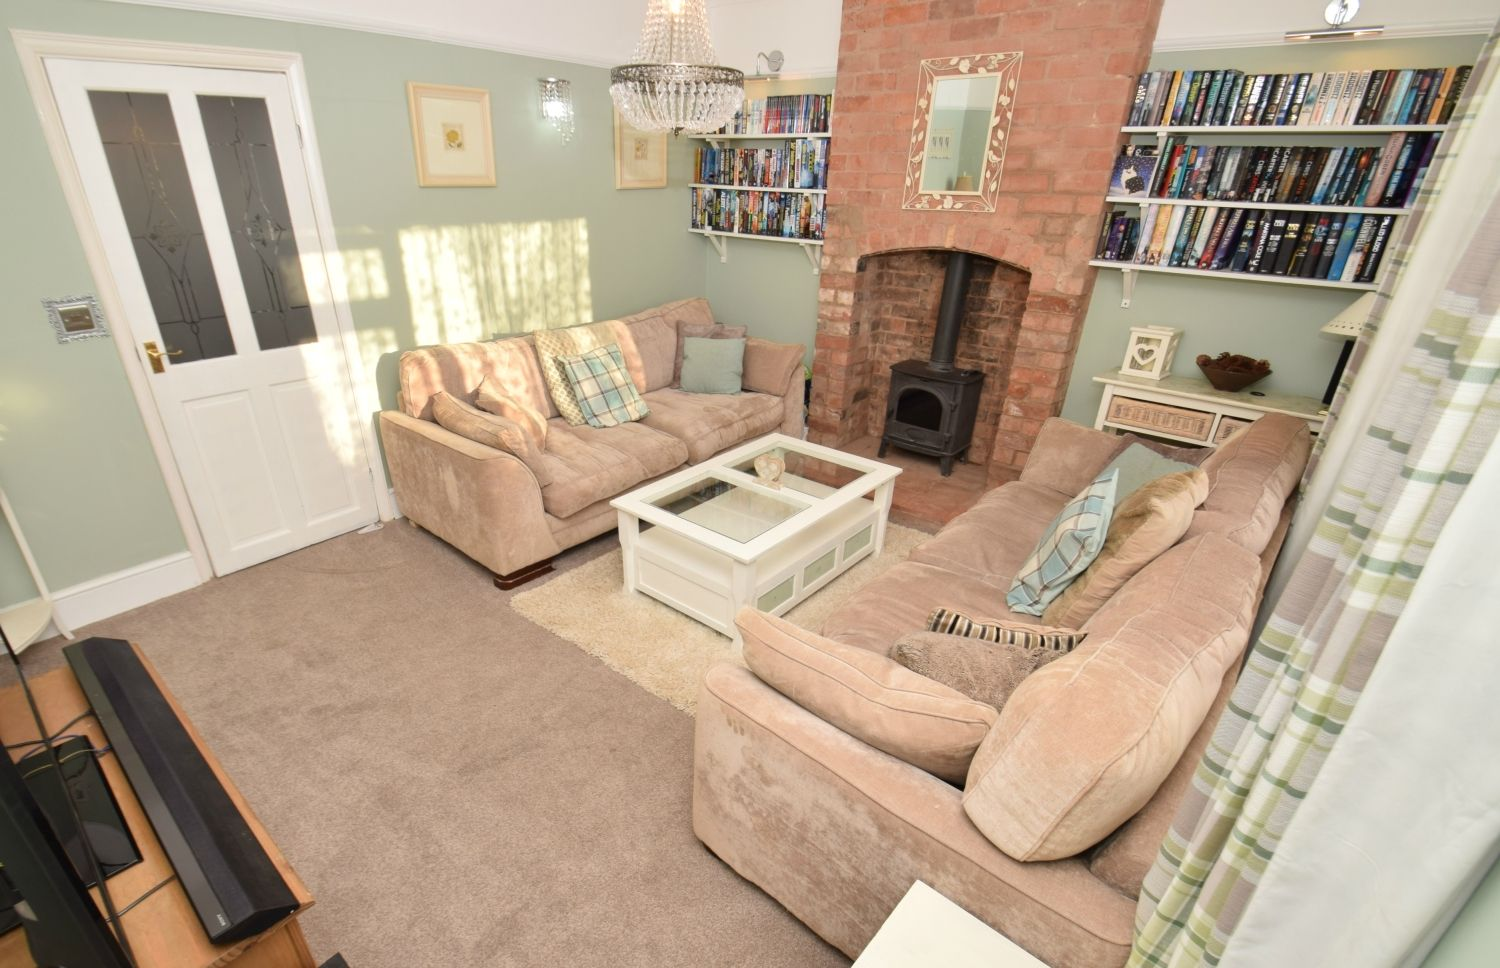 4 bed semi-detached for sale in Upland Grove, Bromsgrove, B61 3